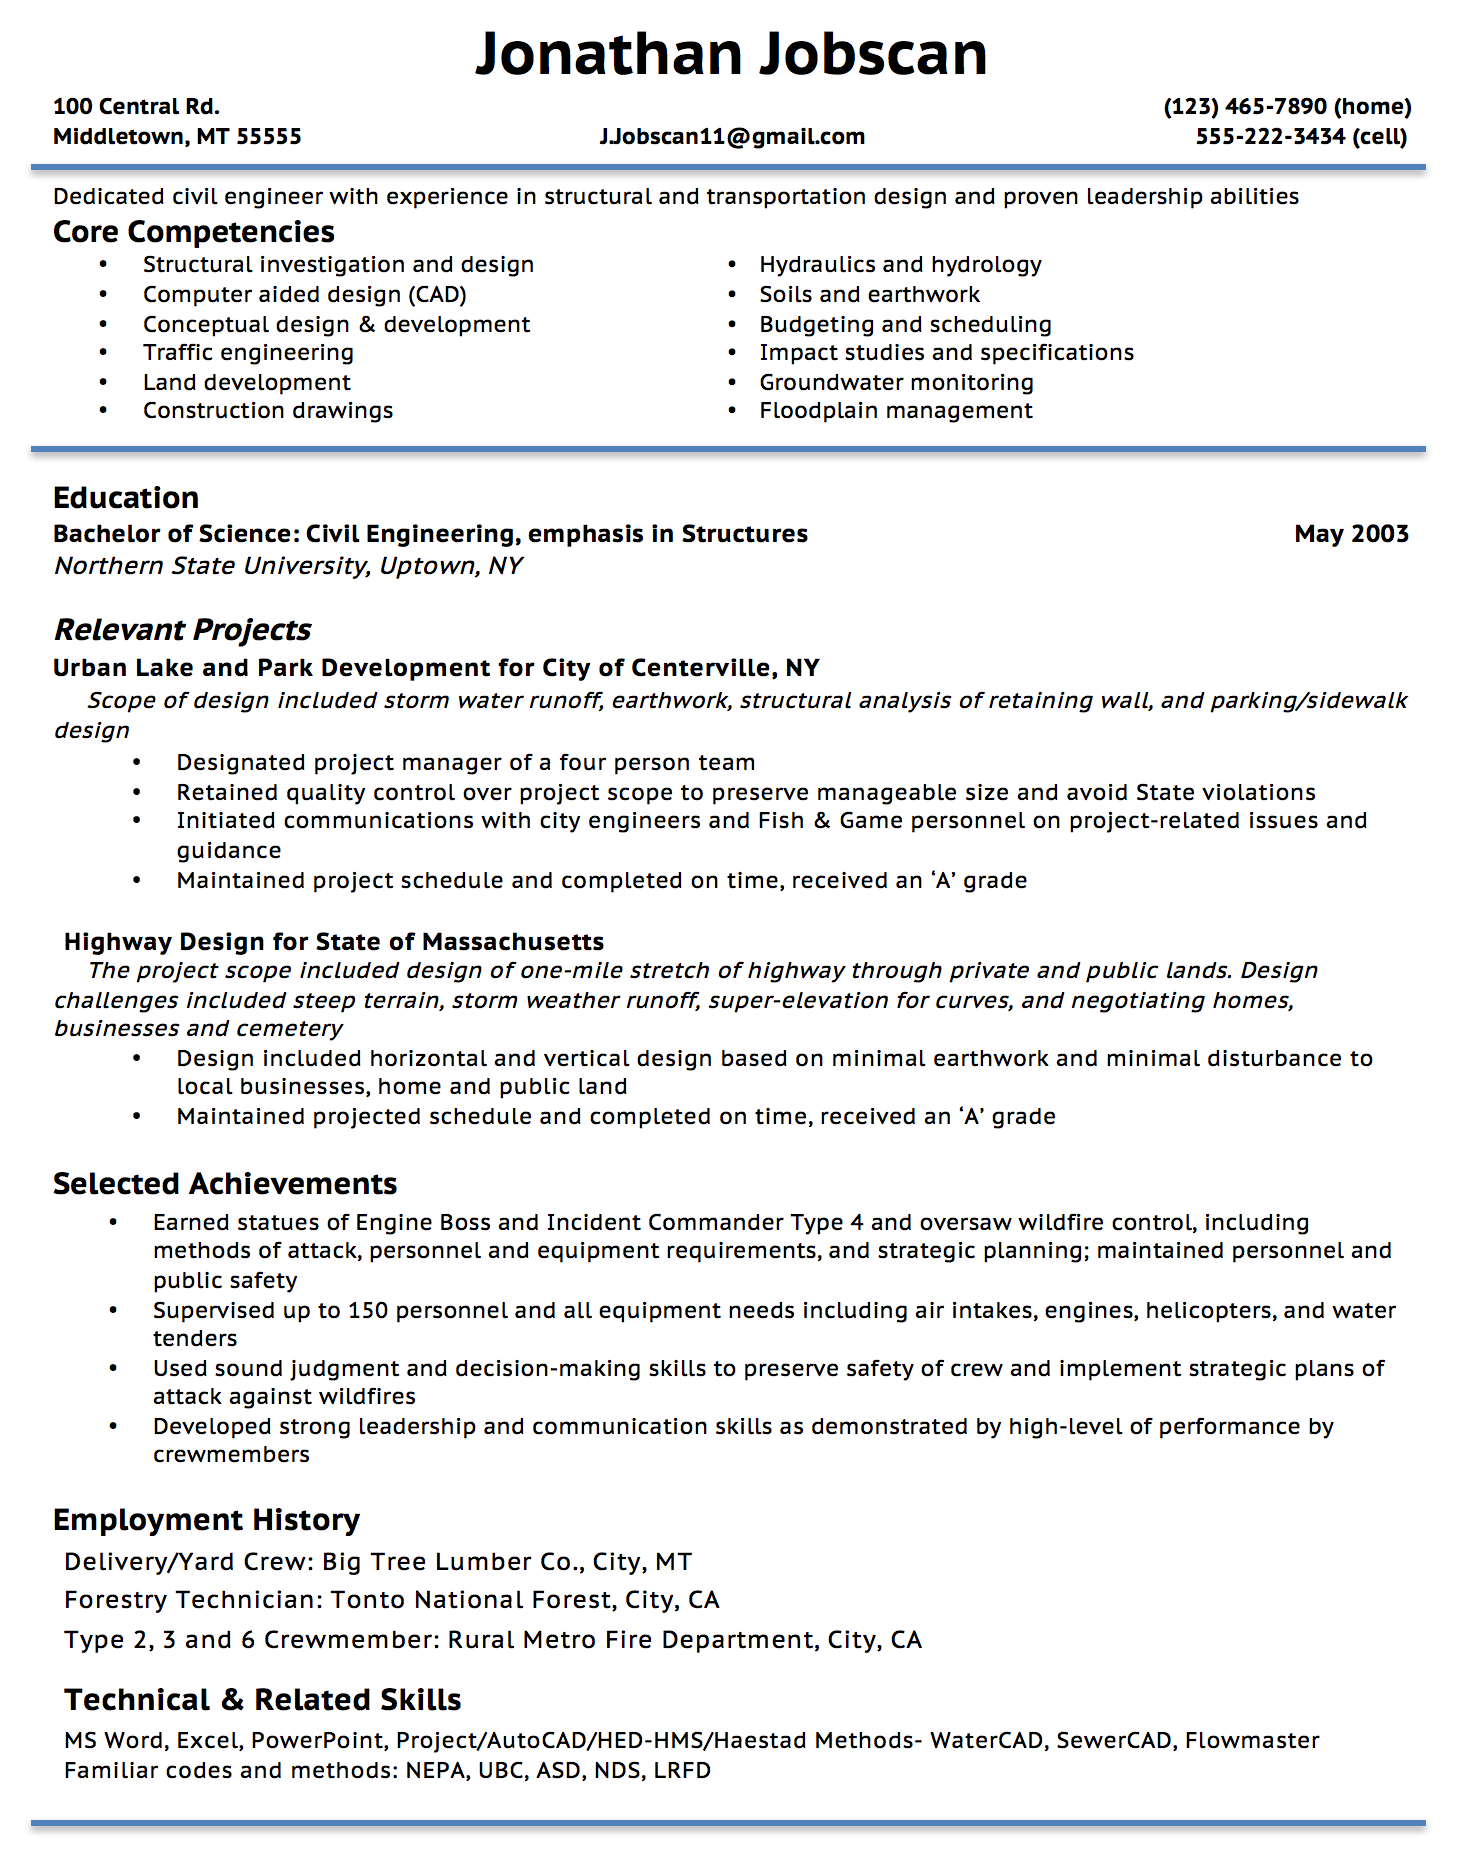 Picnictoimpeachus  Terrific Resume Writing Guide  Jobscan With Gorgeous Example Of A Functional Resume Format With Nice Security Job Resume Also Summary Of Qualifications On Resume In Addition What Is Objective On A Resume And Resume Scholarship As Well As Veteran Resume Additionally How To Do Resumes From Jobscanco With Picnictoimpeachus  Gorgeous Resume Writing Guide  Jobscan With Nice Example Of A Functional Resume Format And Terrific Security Job Resume Also Summary Of Qualifications On Resume In Addition What Is Objective On A Resume From Jobscanco